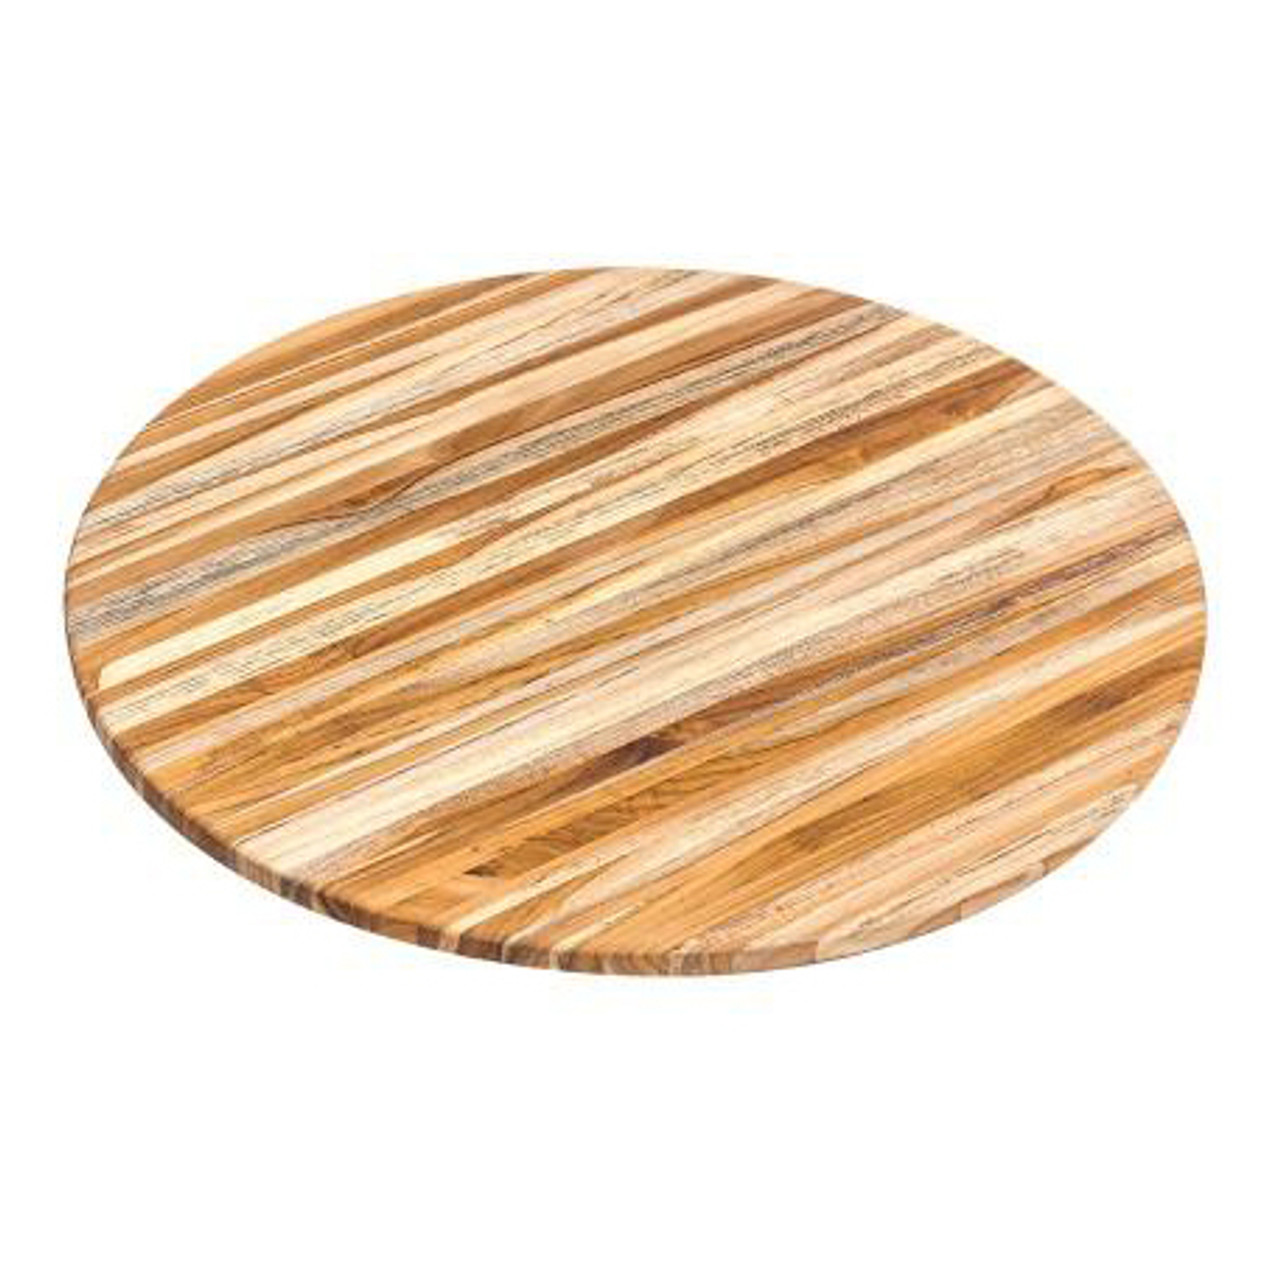 TEAKHAUS ROUND EDGE GRAIN SERVING BOARD 18X18